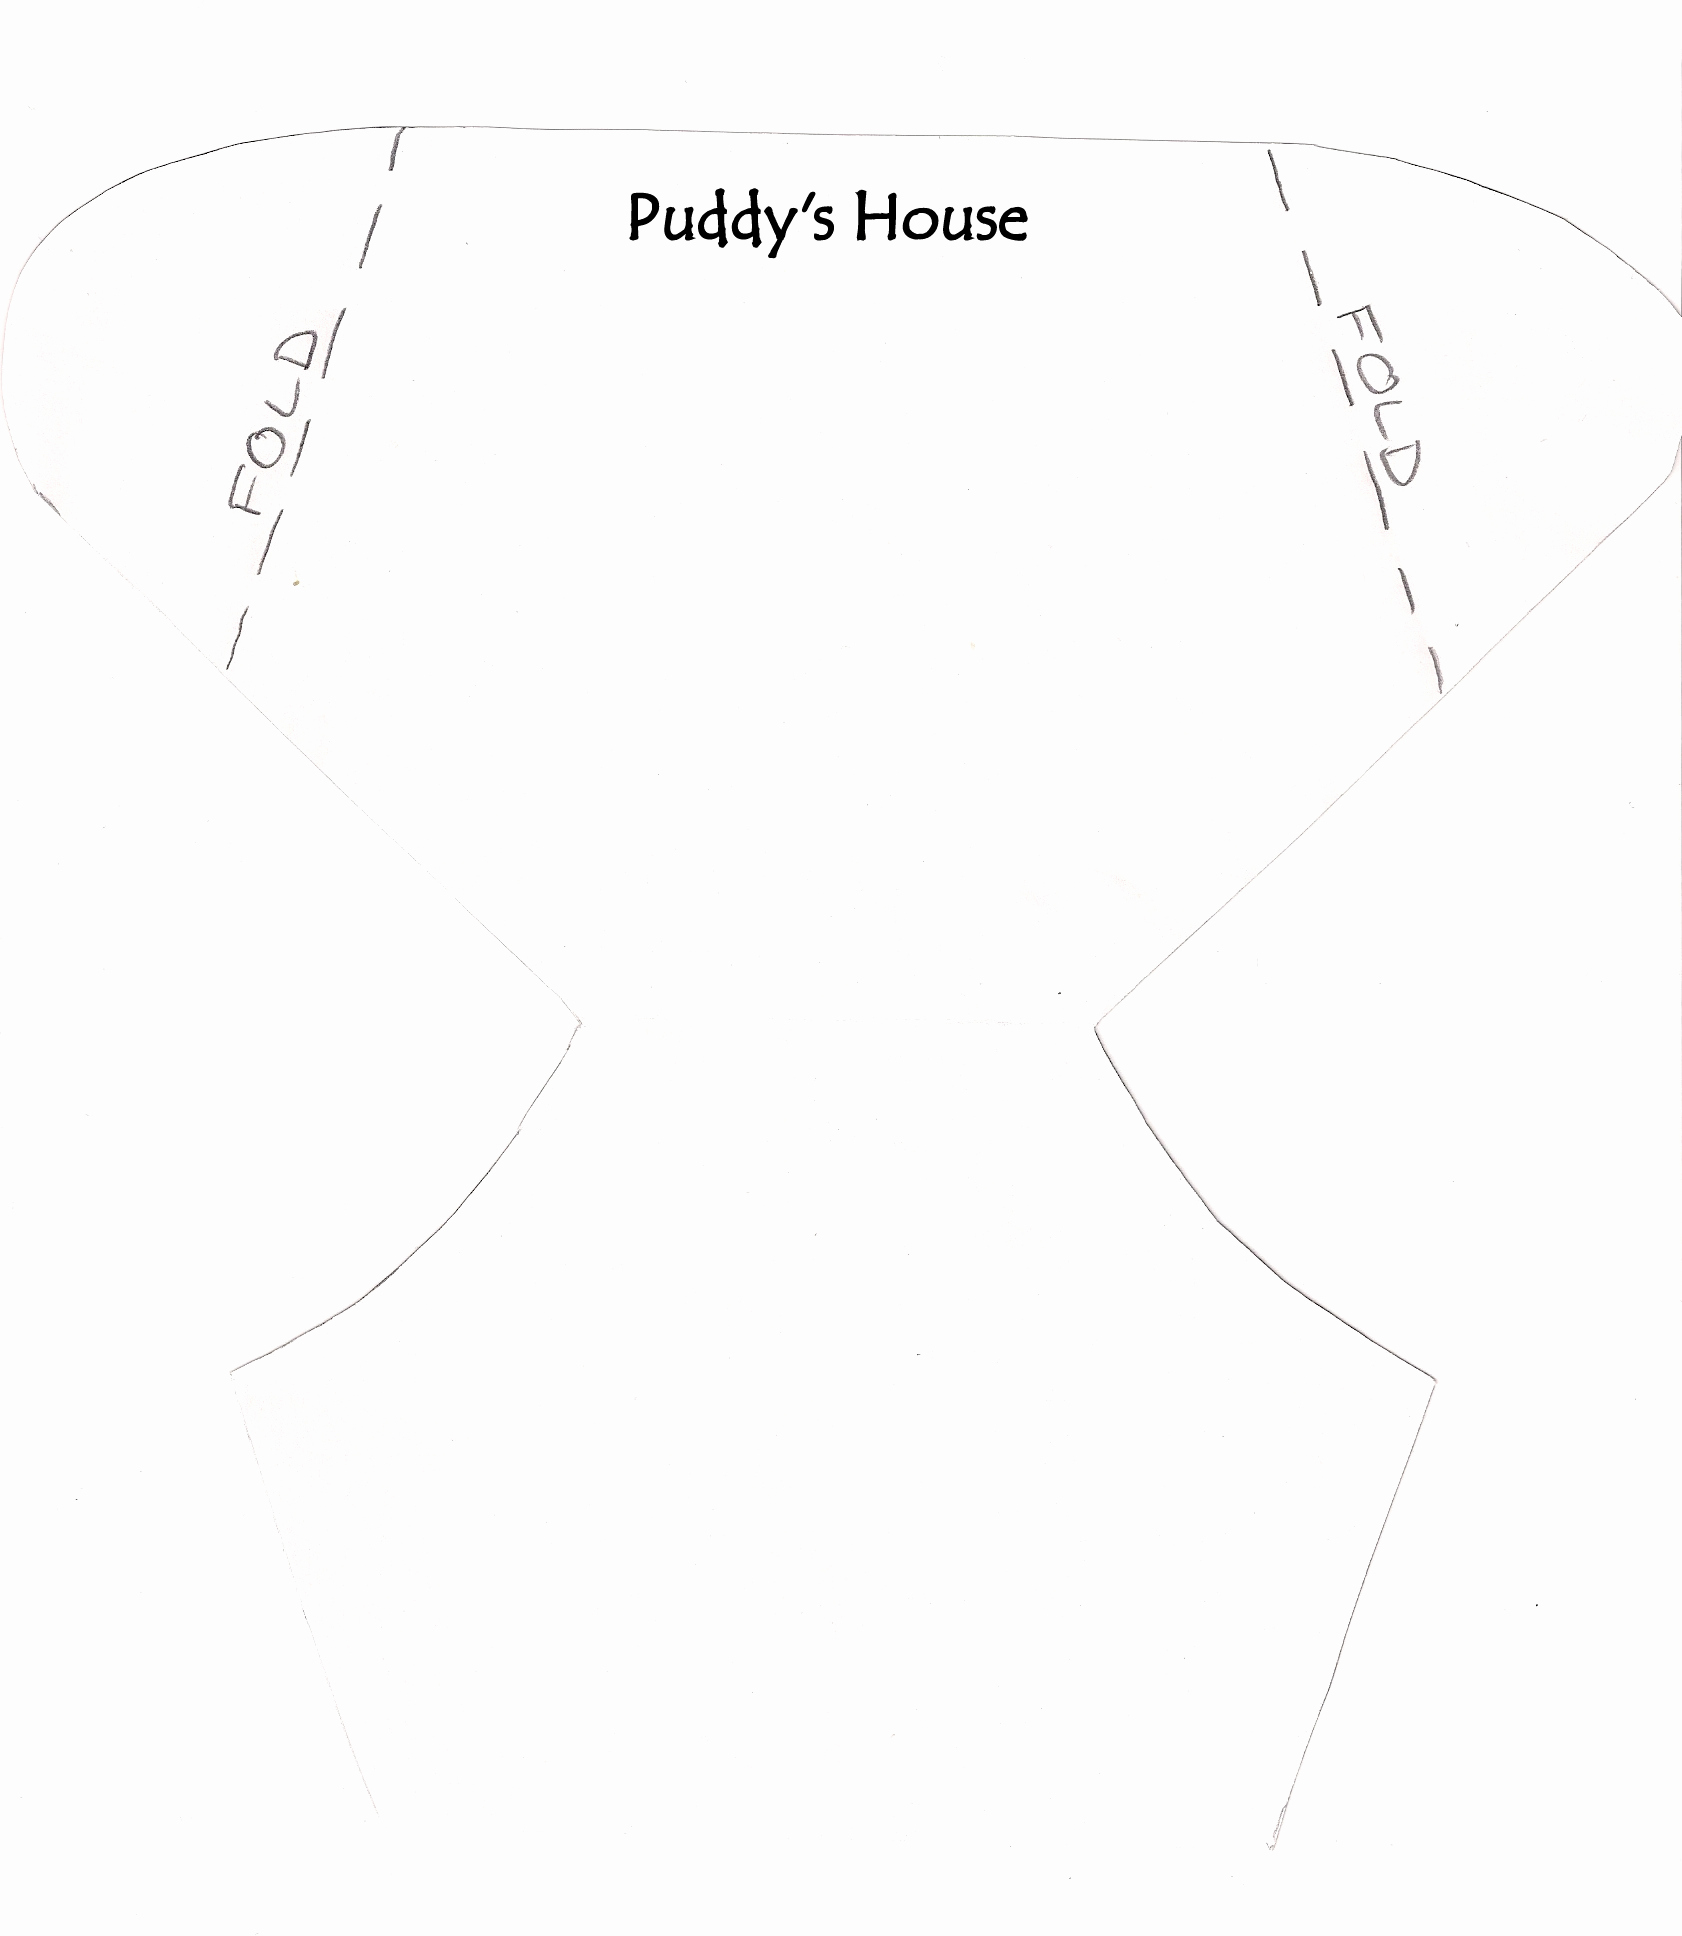 Baby Diaper Invitation Template Luxury Diy Diaper Invitation – Puddy S House